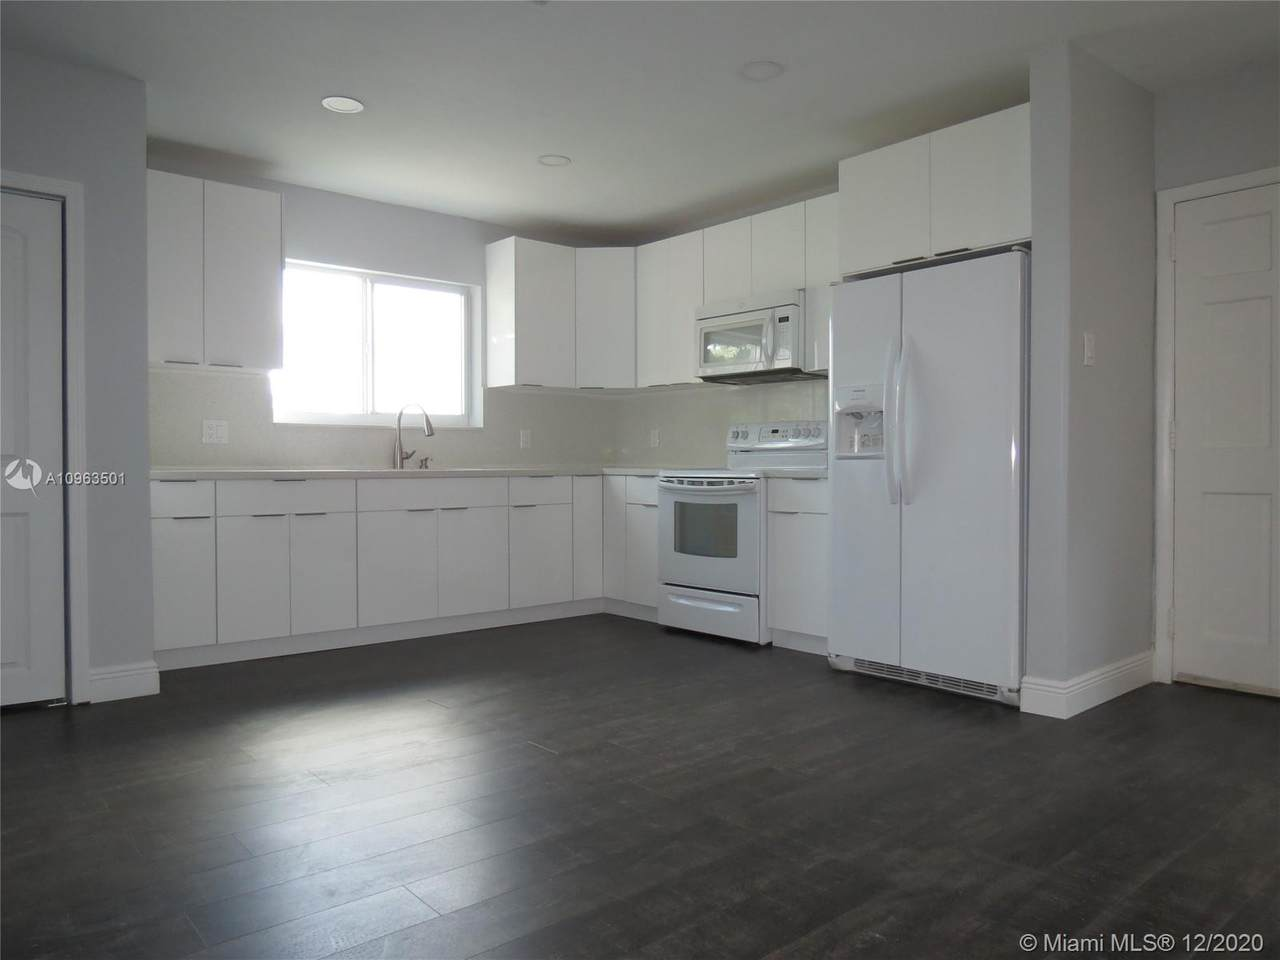 1750 62nd Ave - Photo 1